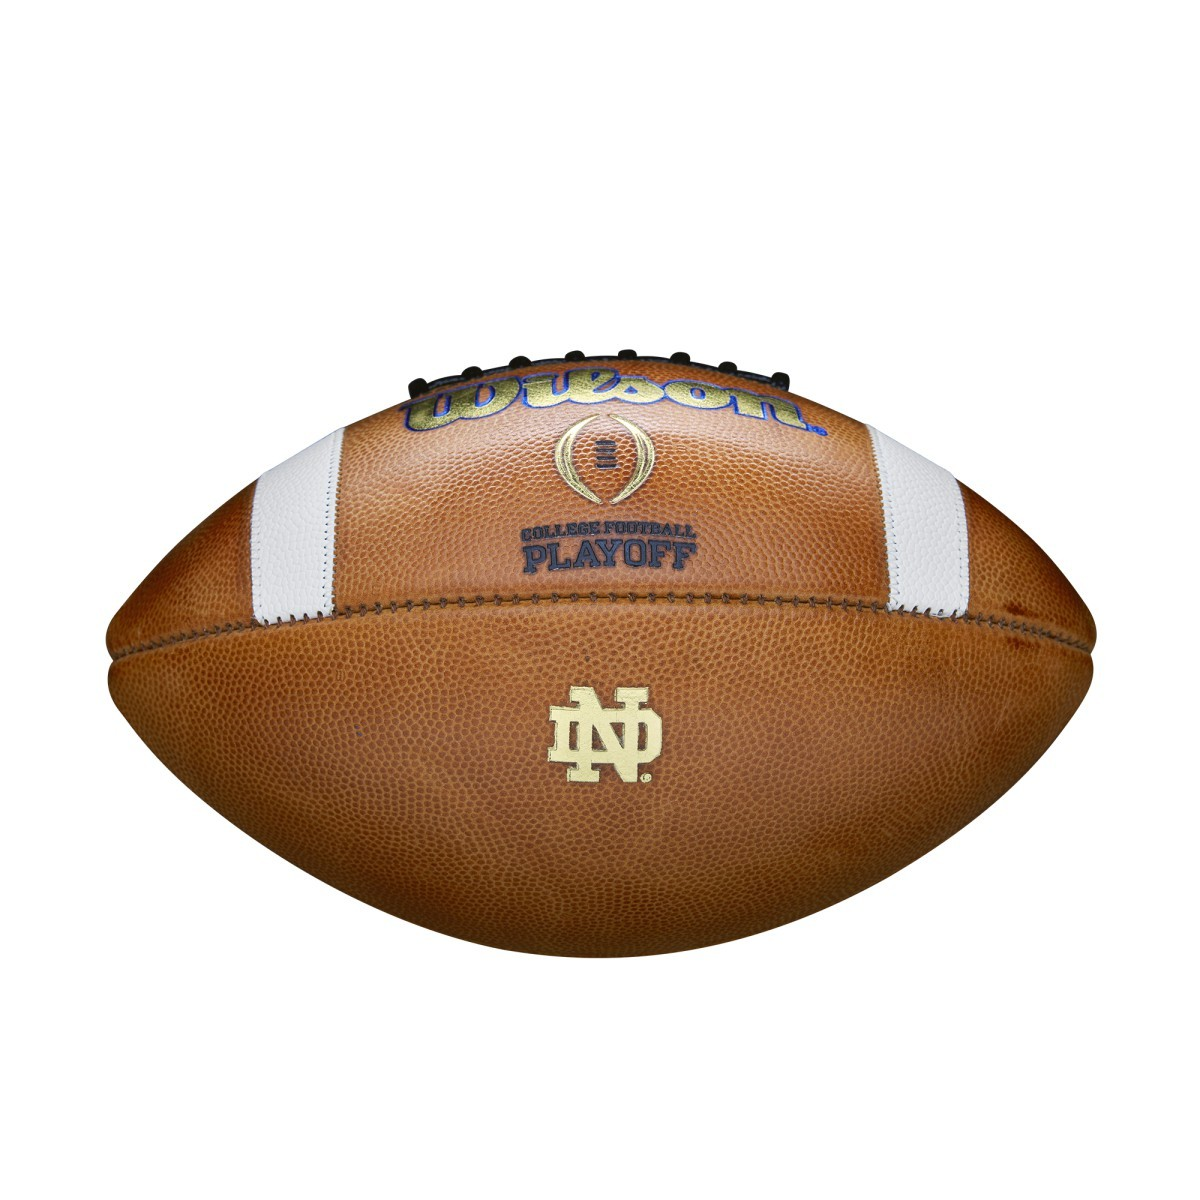 COLLEGE FOOTBALL PLAYOFF GAME BALL.